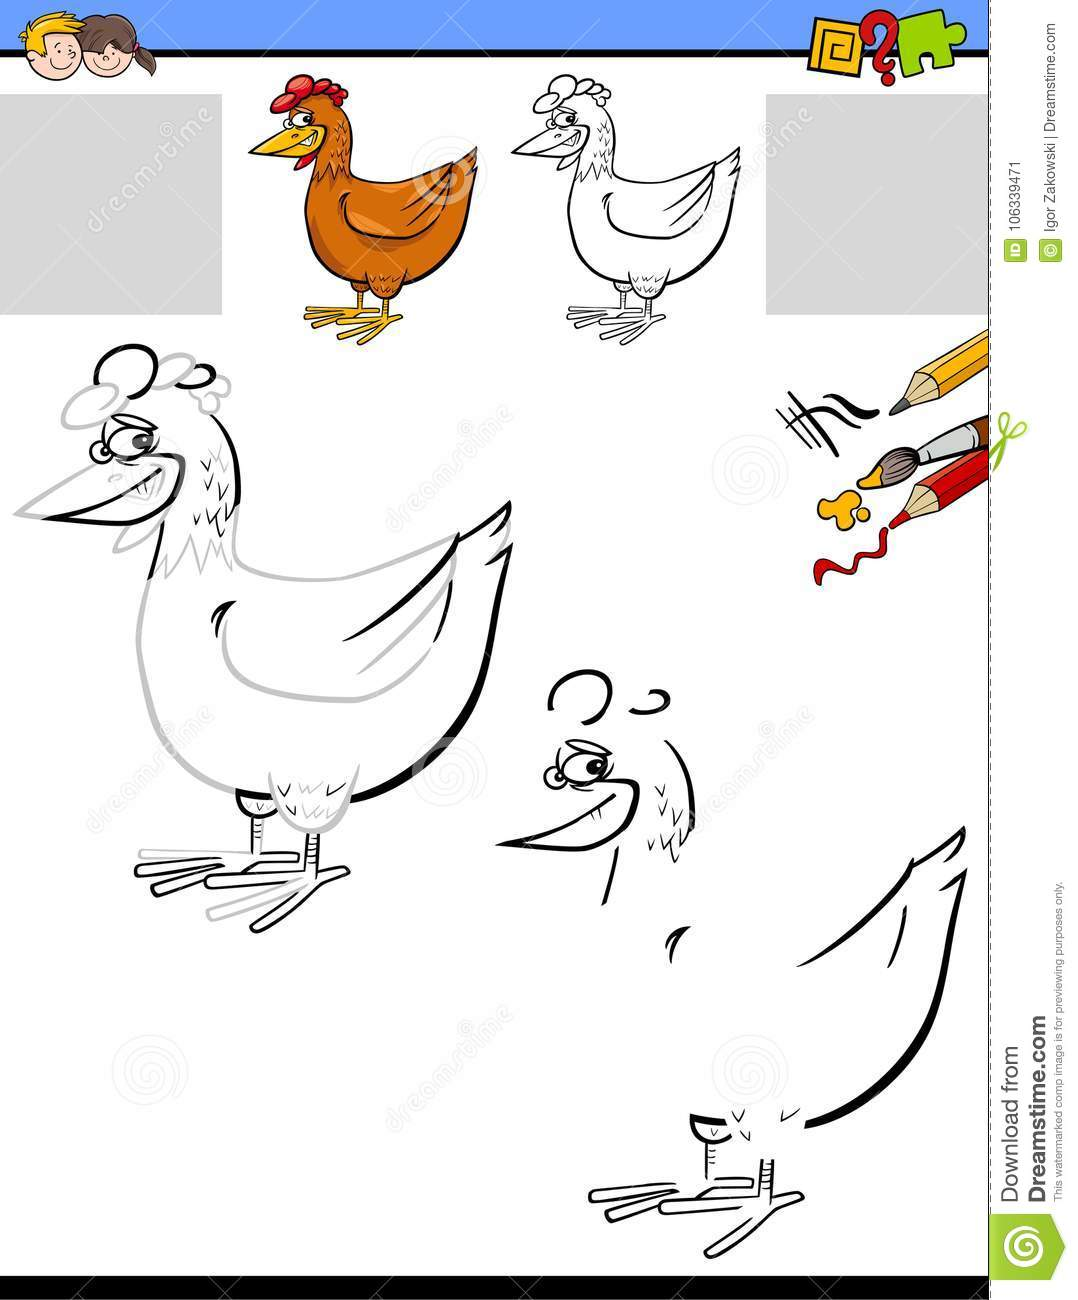 Drawing And Coloring Worksheet With Chicken Stock Vector